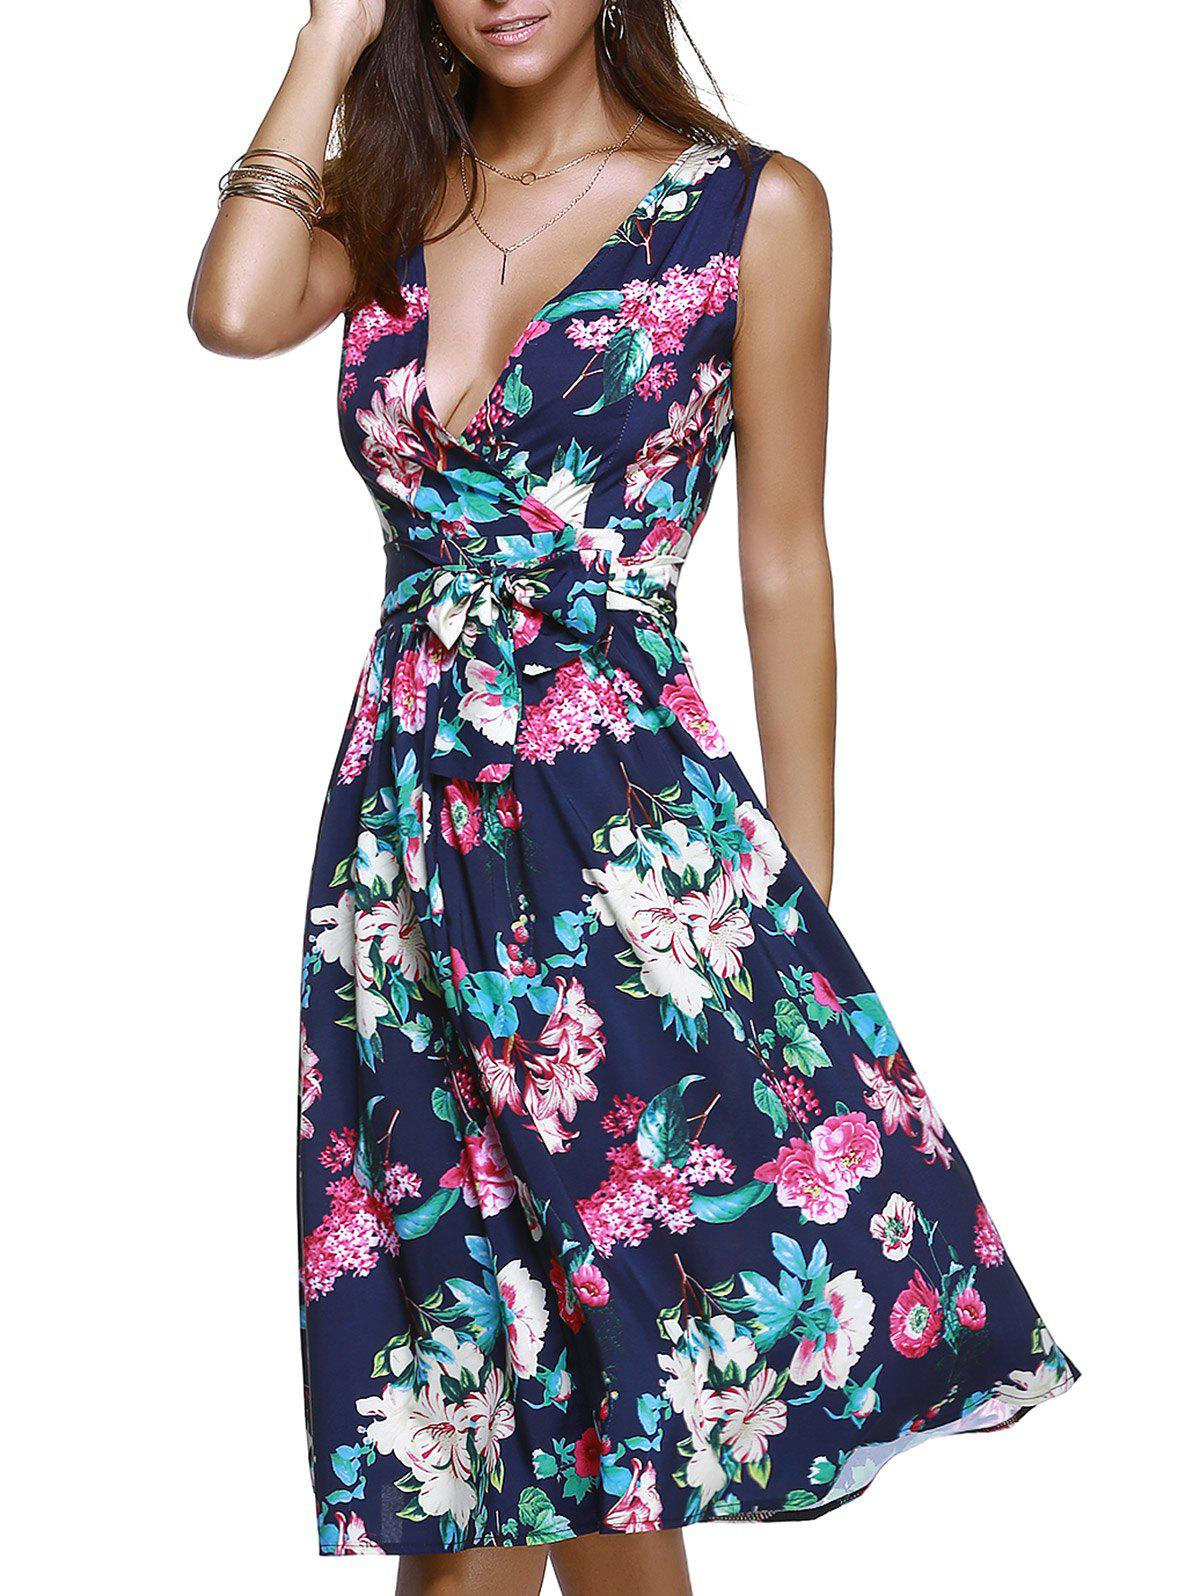 Surplice Bowknot Belted Floral Ladylike Women's Dress - CADETBLUE XL